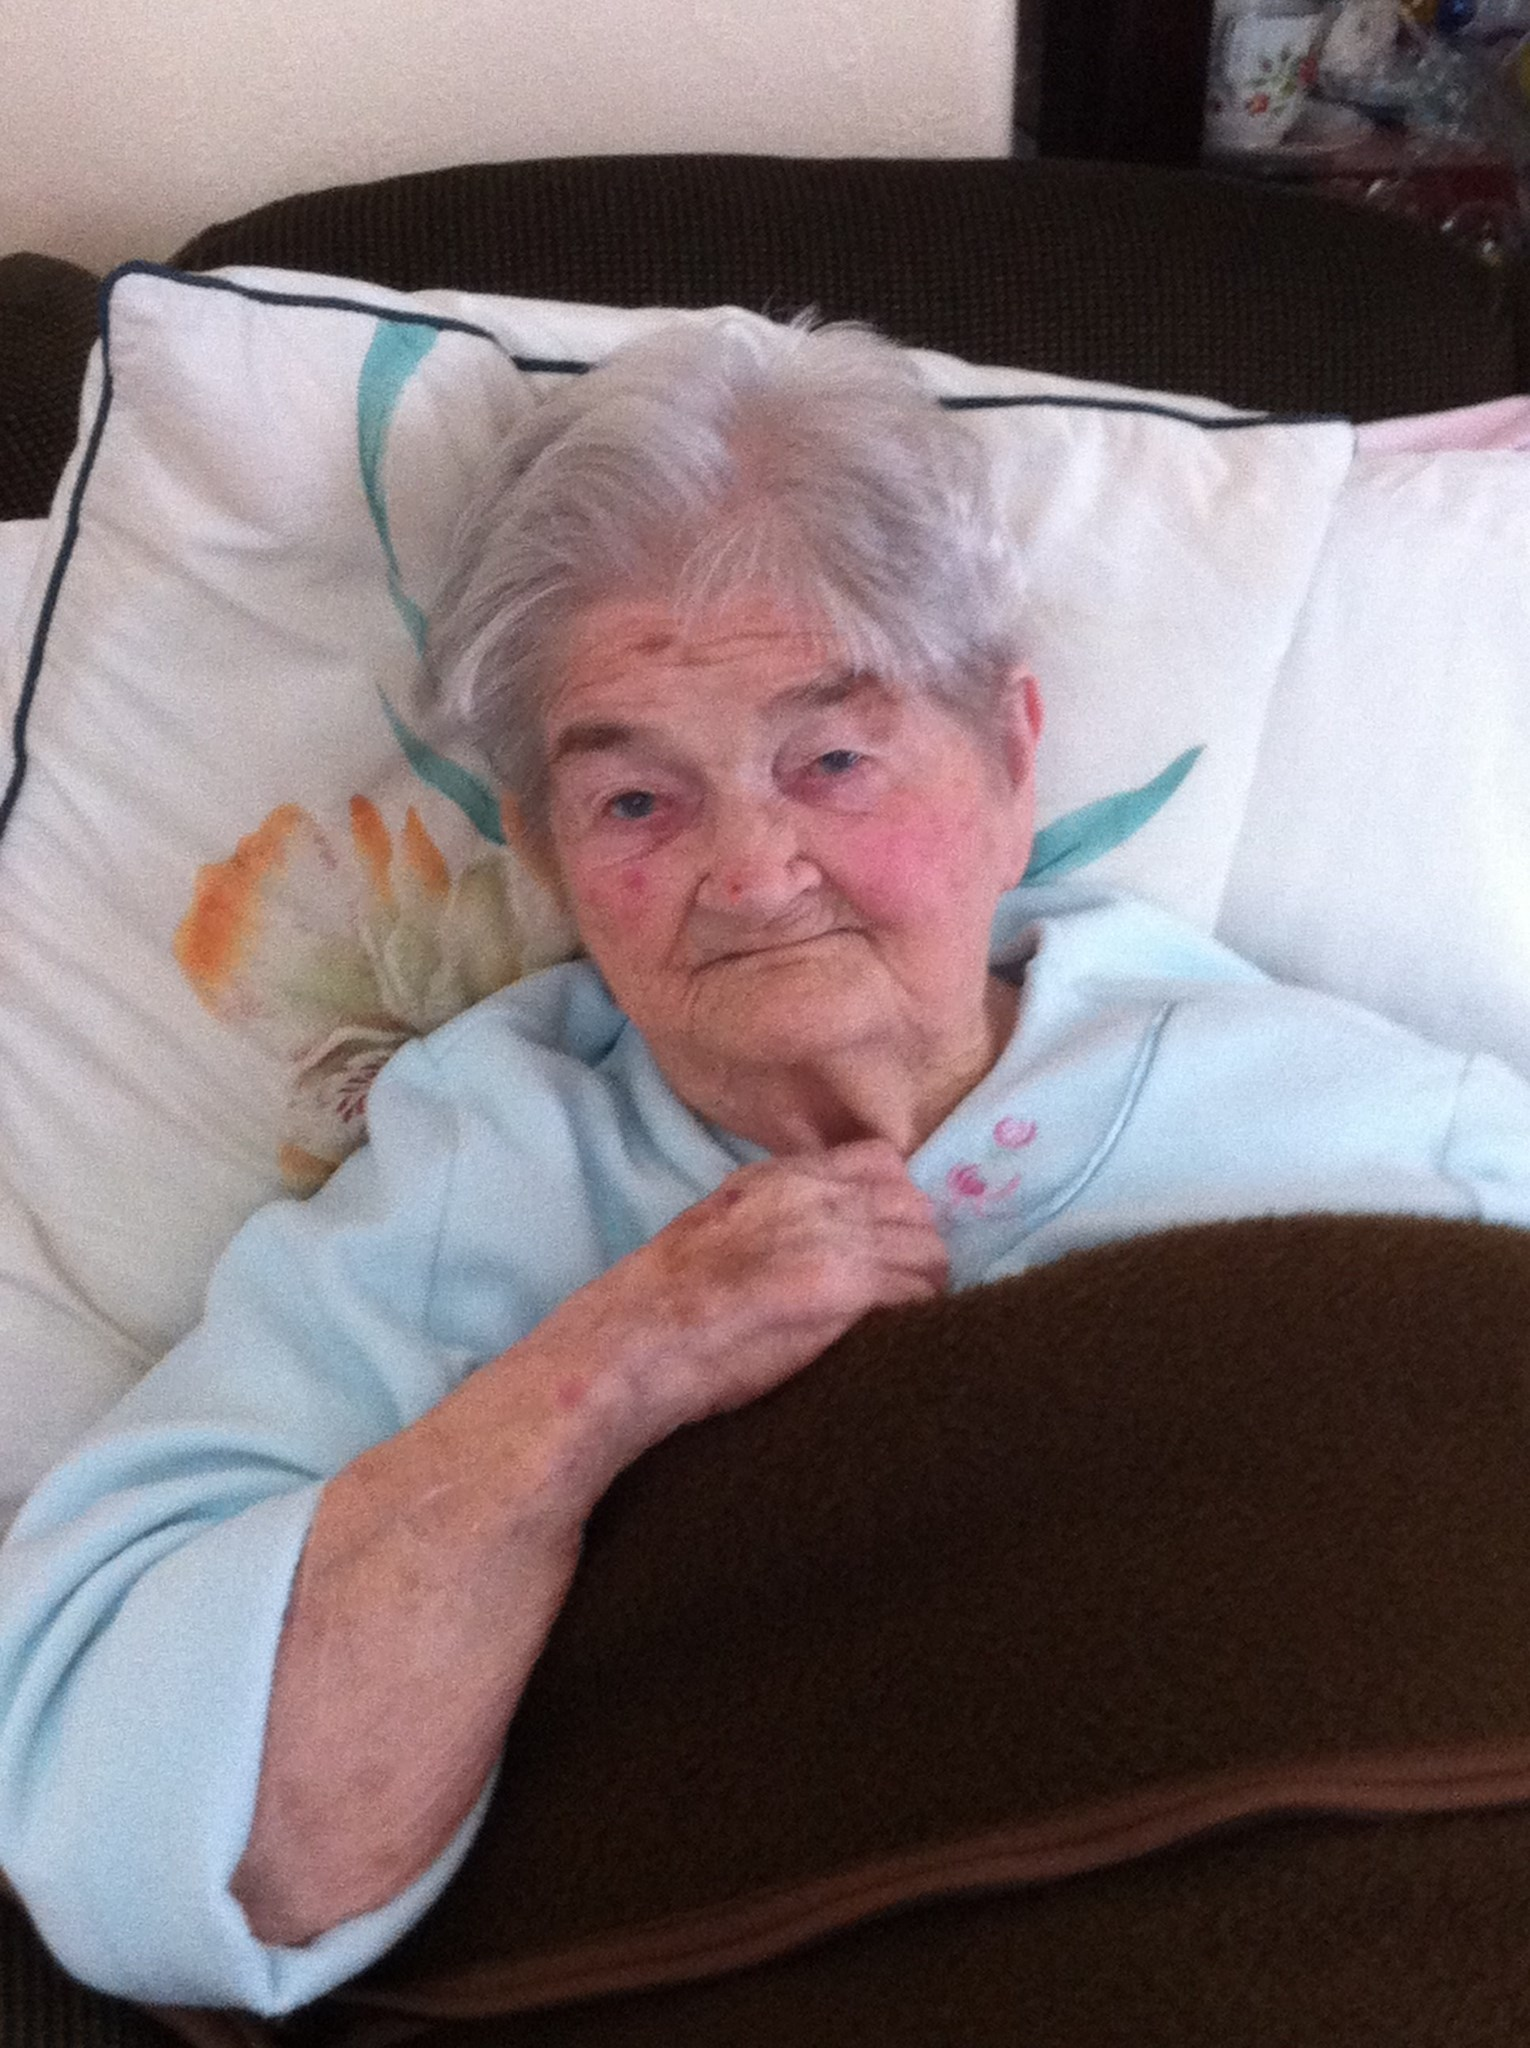 In the loving mermory of a dear mum, nan, great nan and great great nan much loved and sadly missed